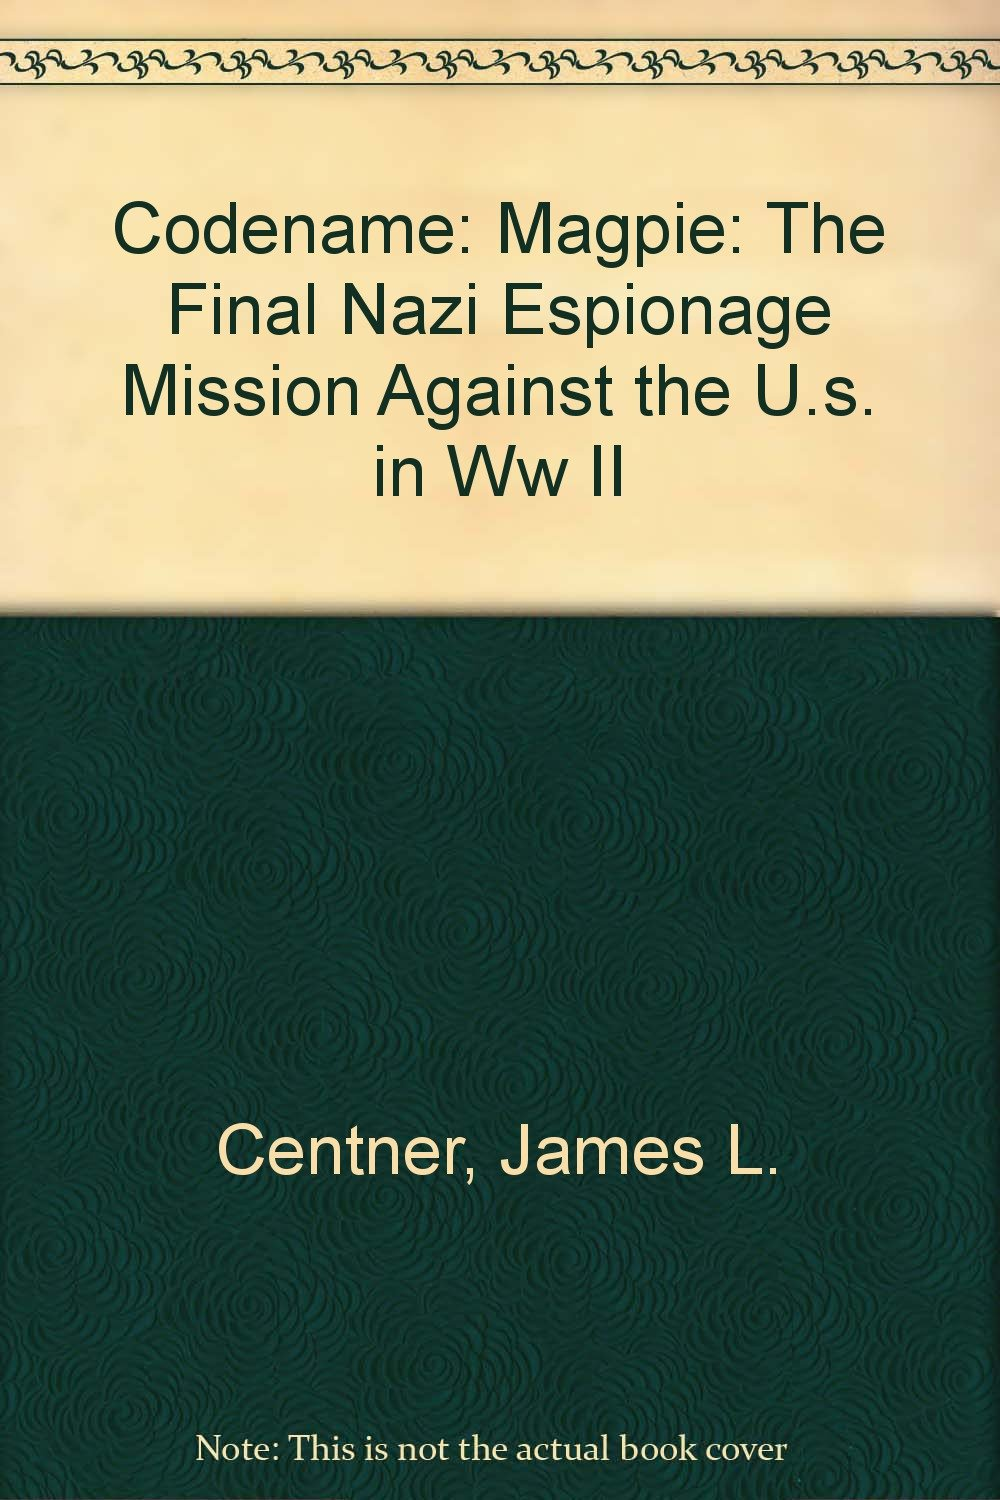 Read Online CODENAME: MAGPIE: The Final Nazi Espionage Mission Against the U.S. in WW II PDF